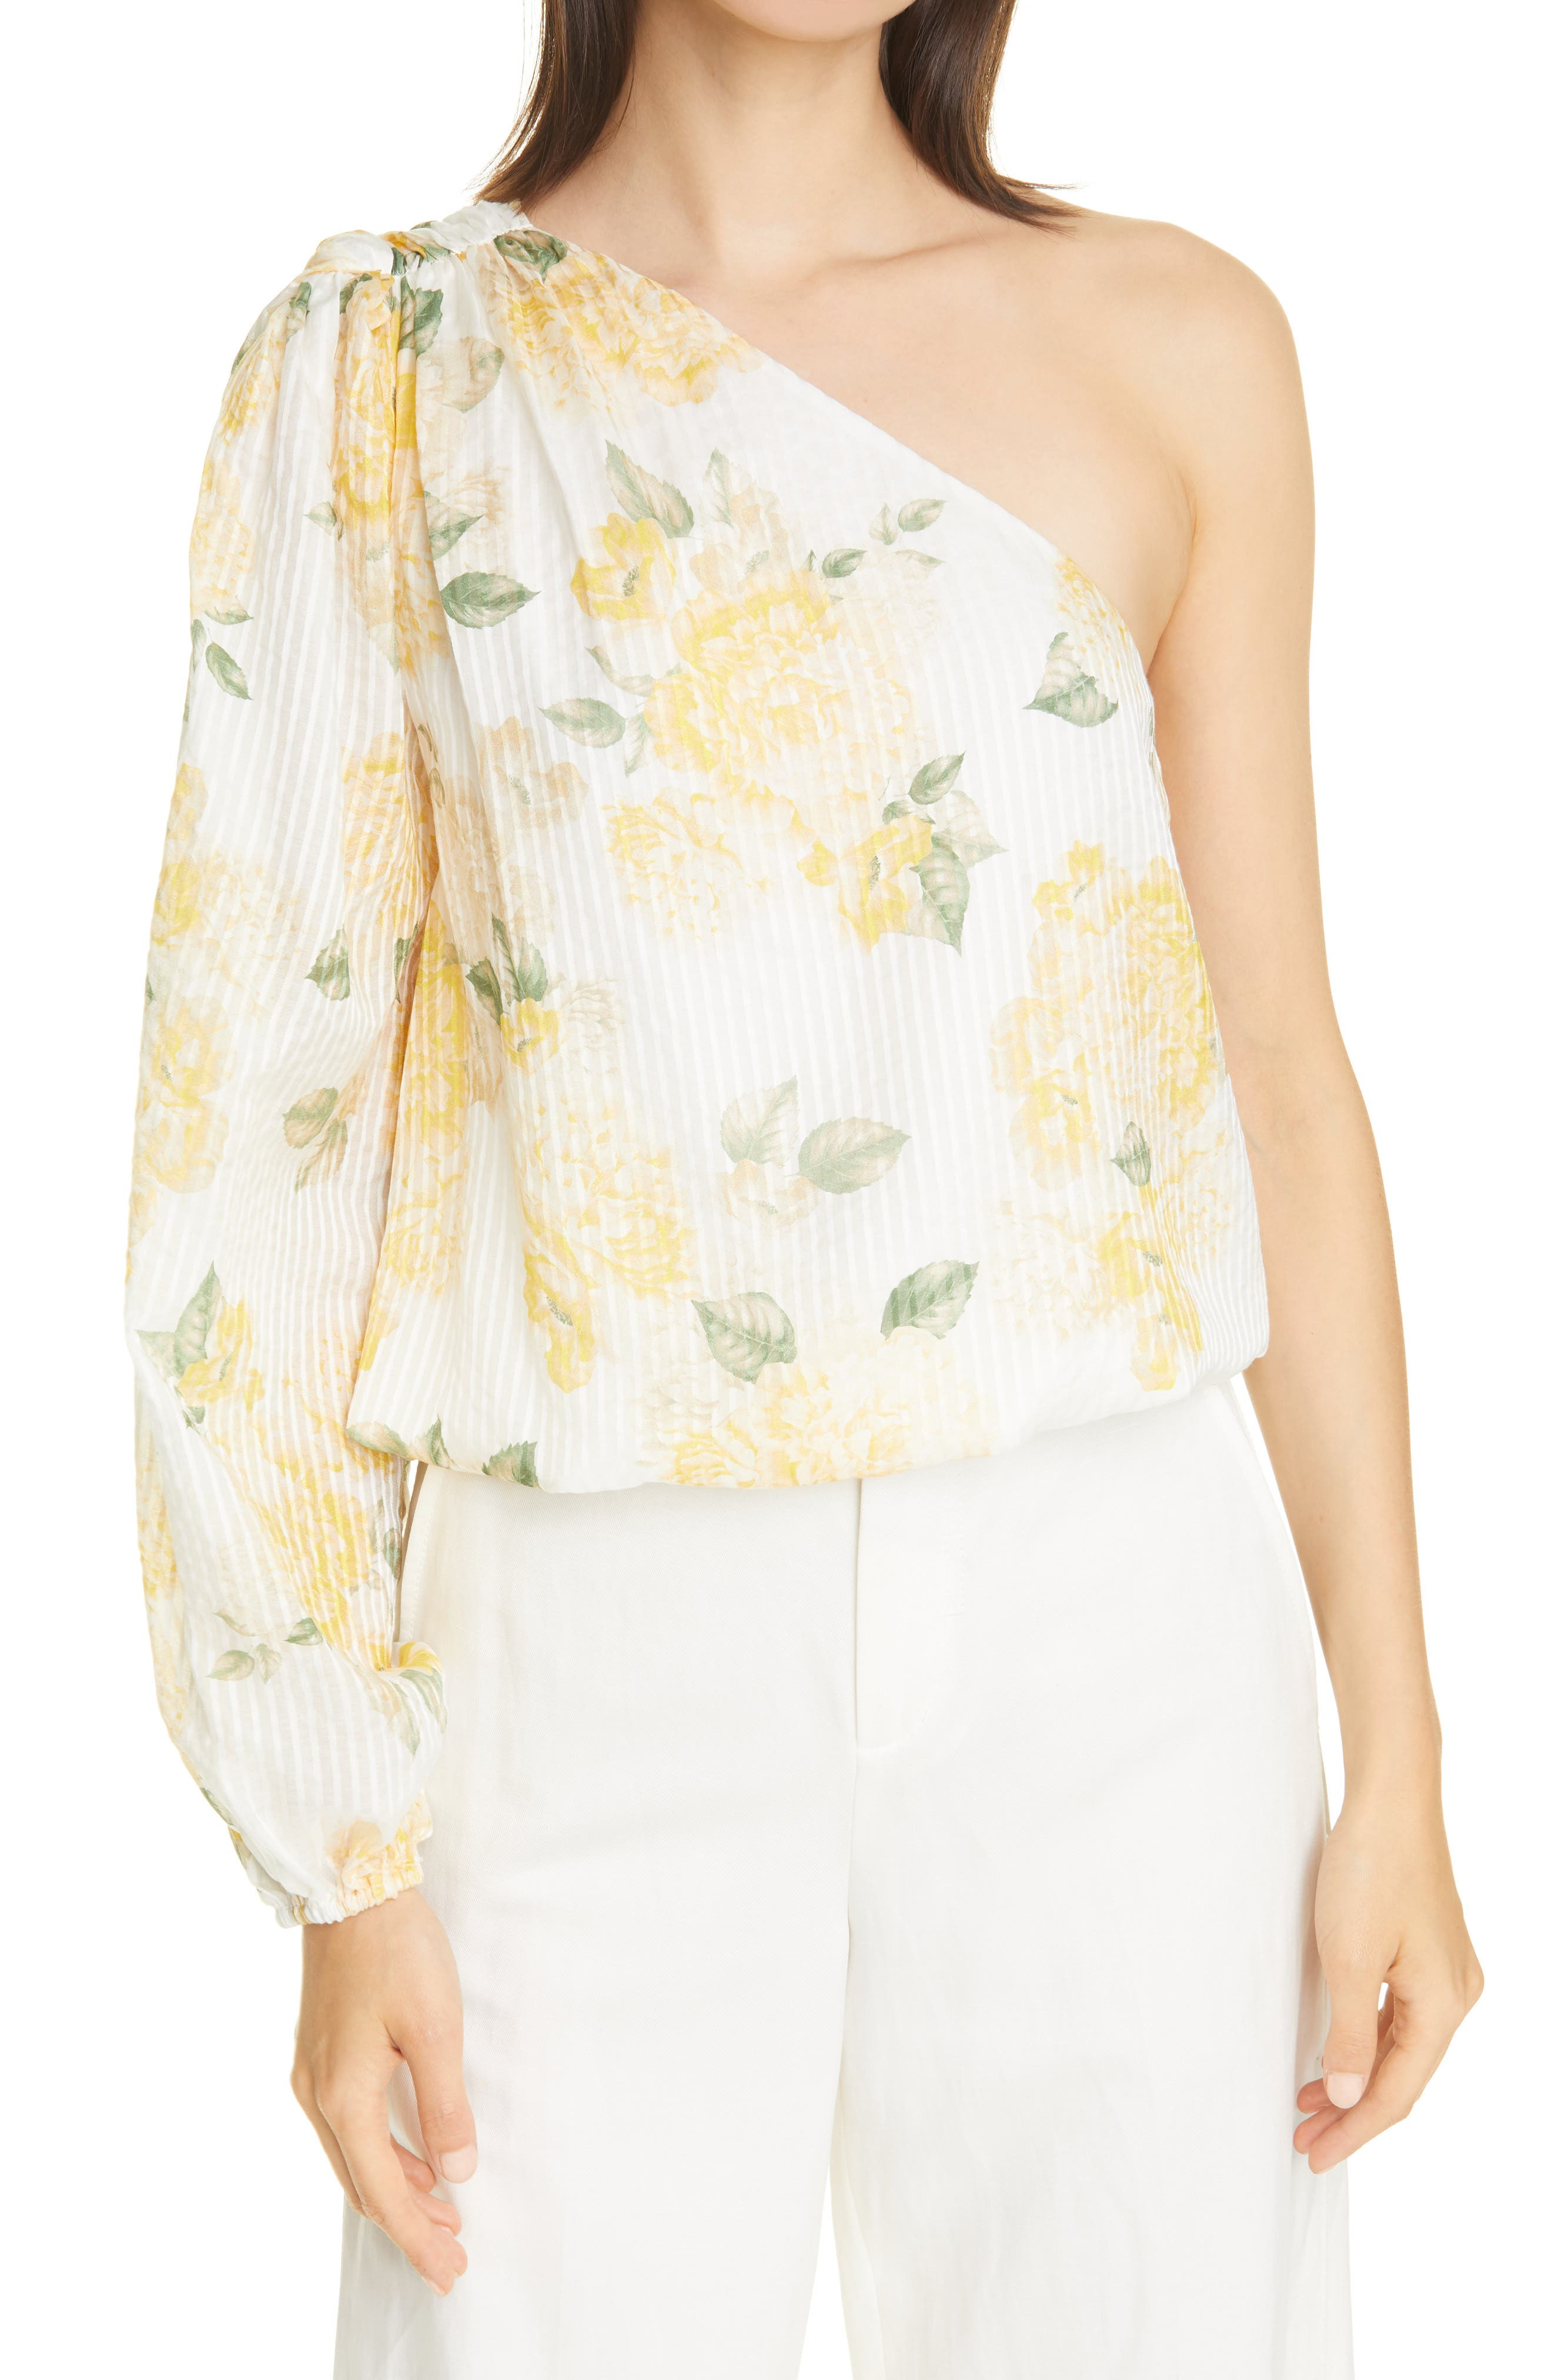 The Lenore One-Shoulder Cotton & Silk Top